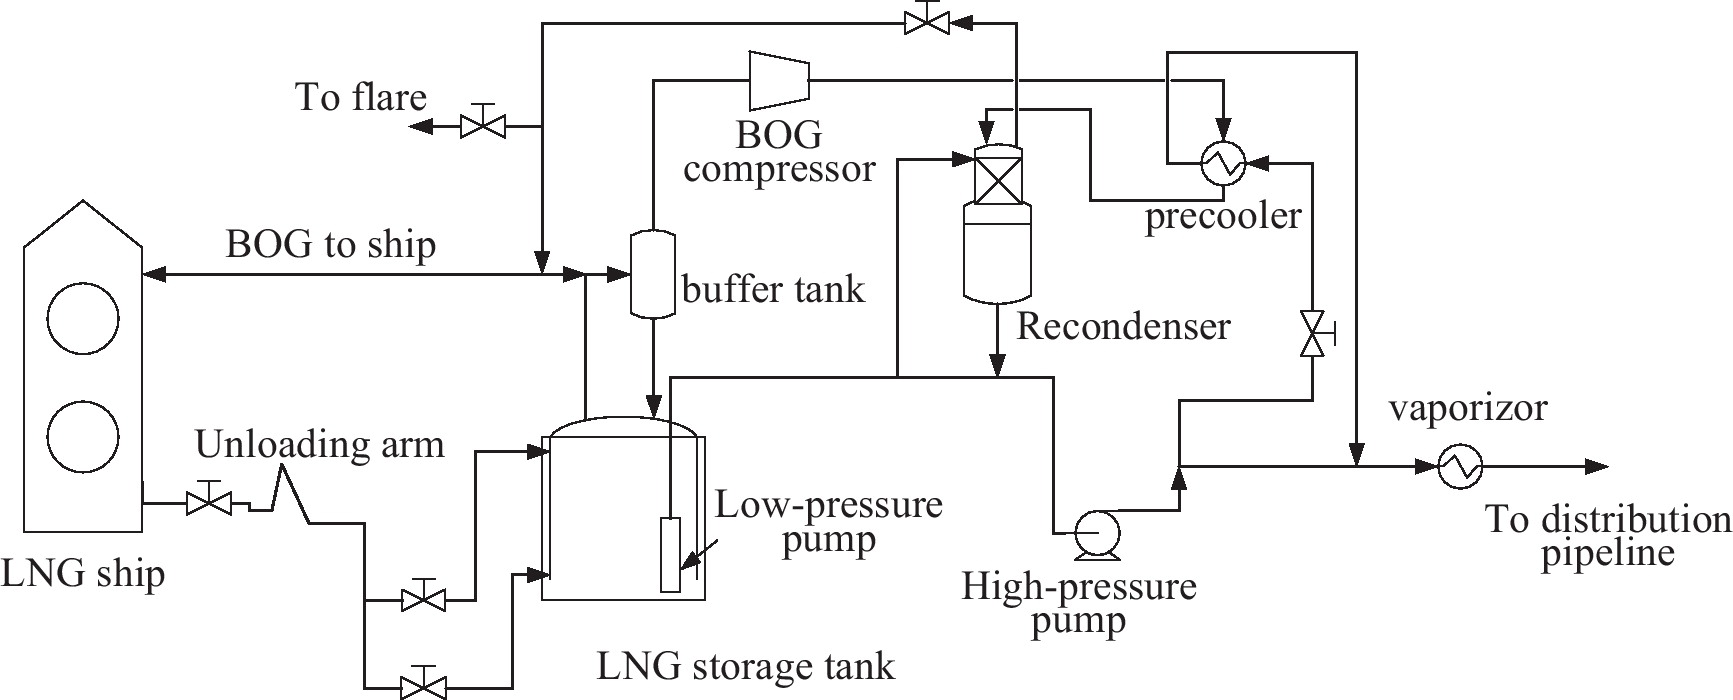 Flexible and cost effective optimization of bog boil off gas download powerpoint slide pooptronica Image collections